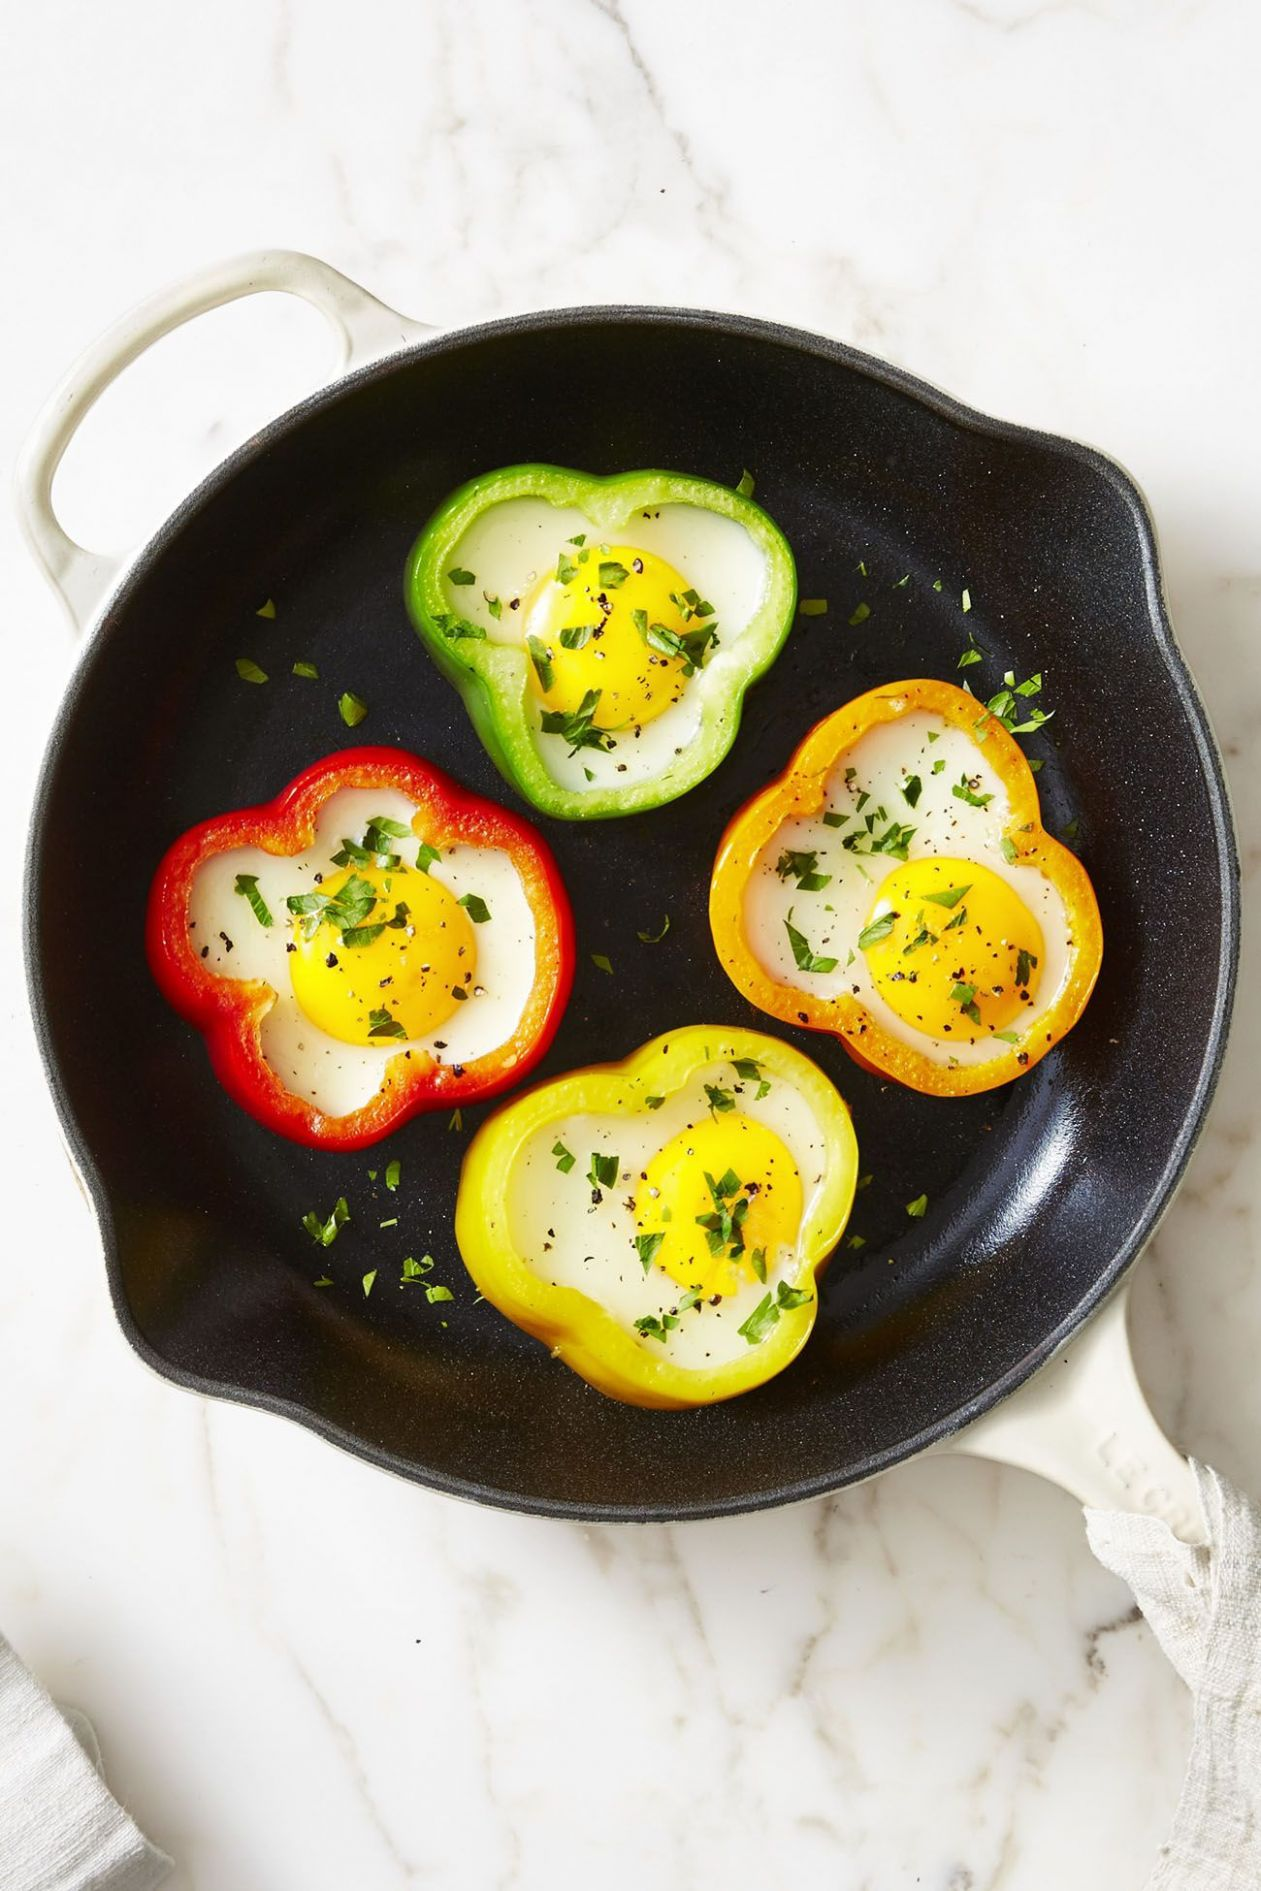 12 Easy Breakfast Ideas - Quick and Healthy Breakfast Recipes - Breakfast Recipes Easy To Make